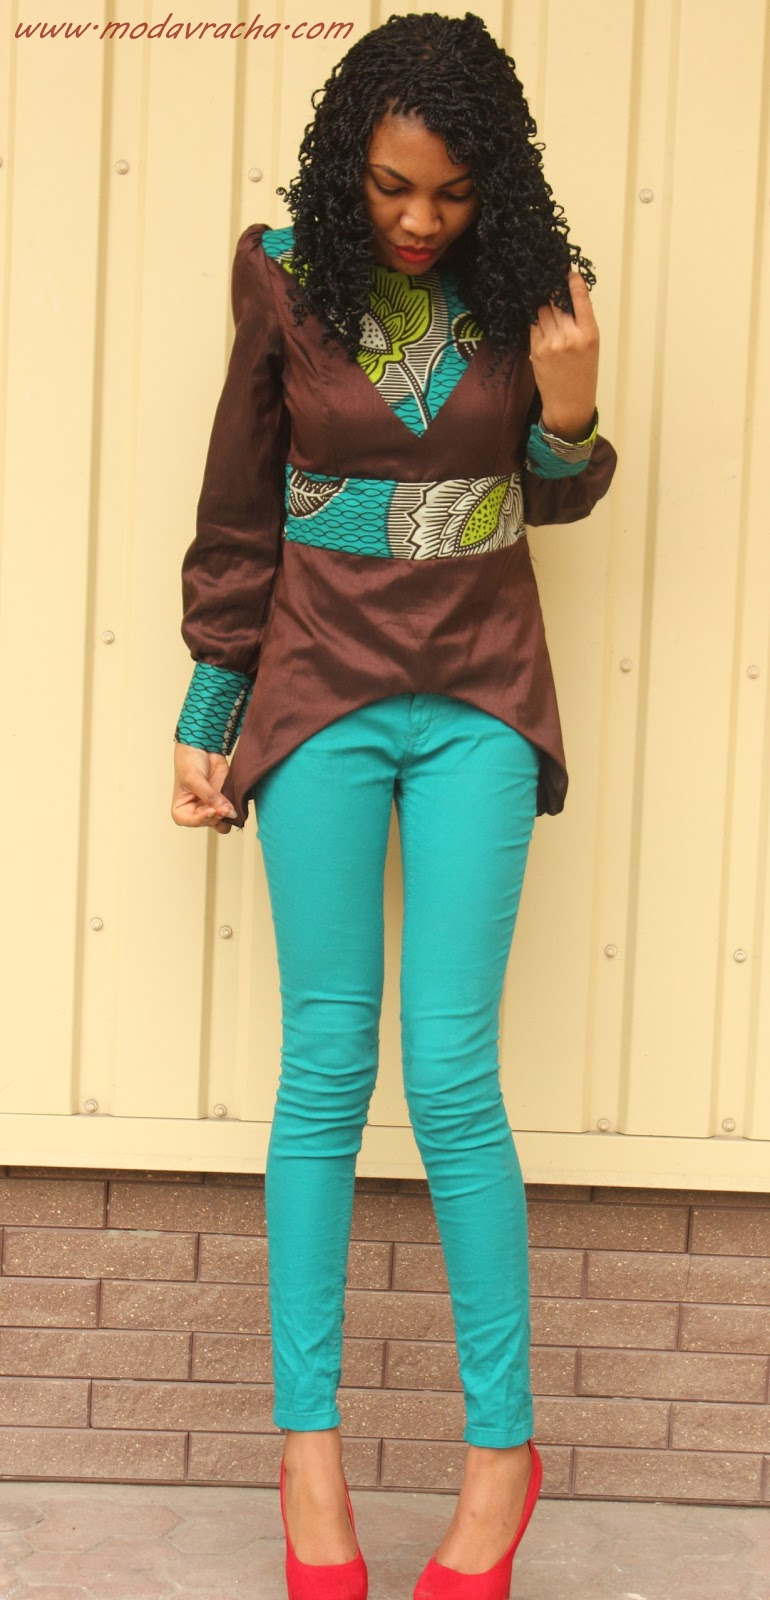 Nigerian fashion blogger modavracha in ankara long sleeves blouse